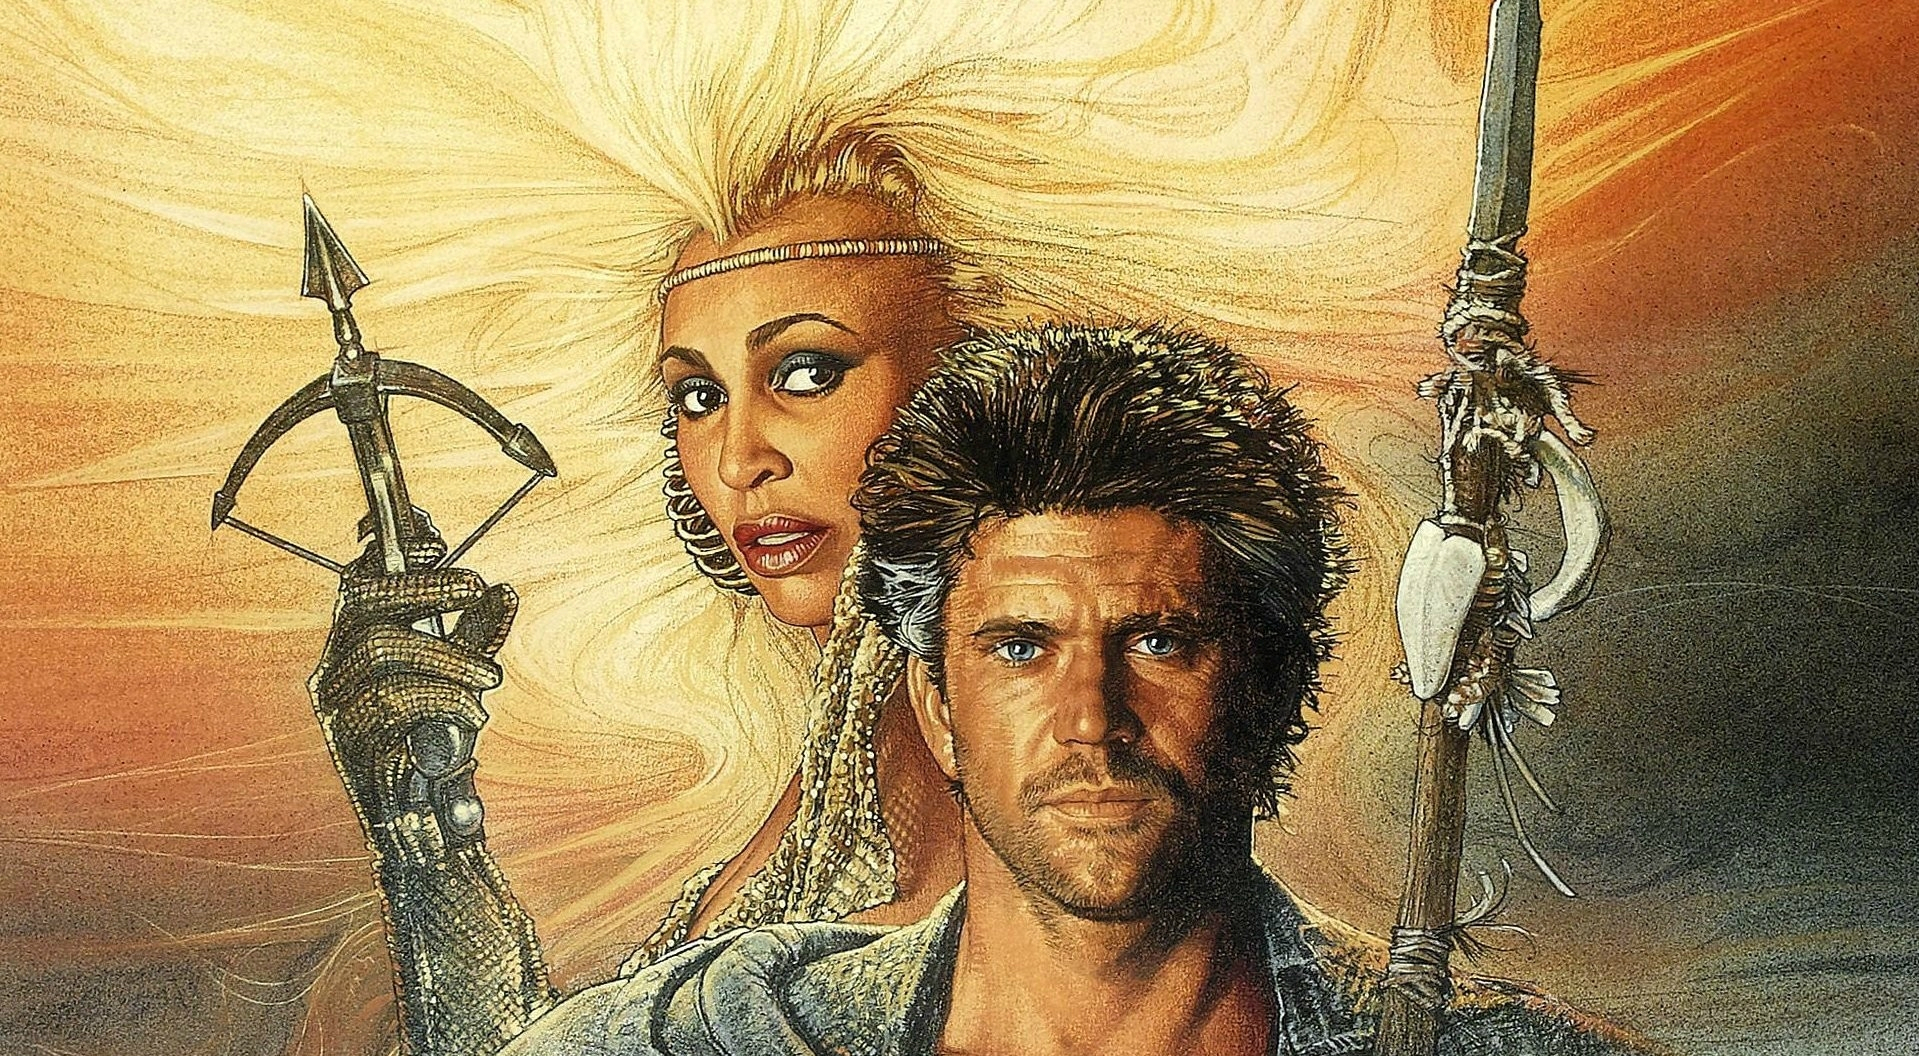 Mad-Max-Beyond-Thunderdome-D-wallpaper-wp4006186-1